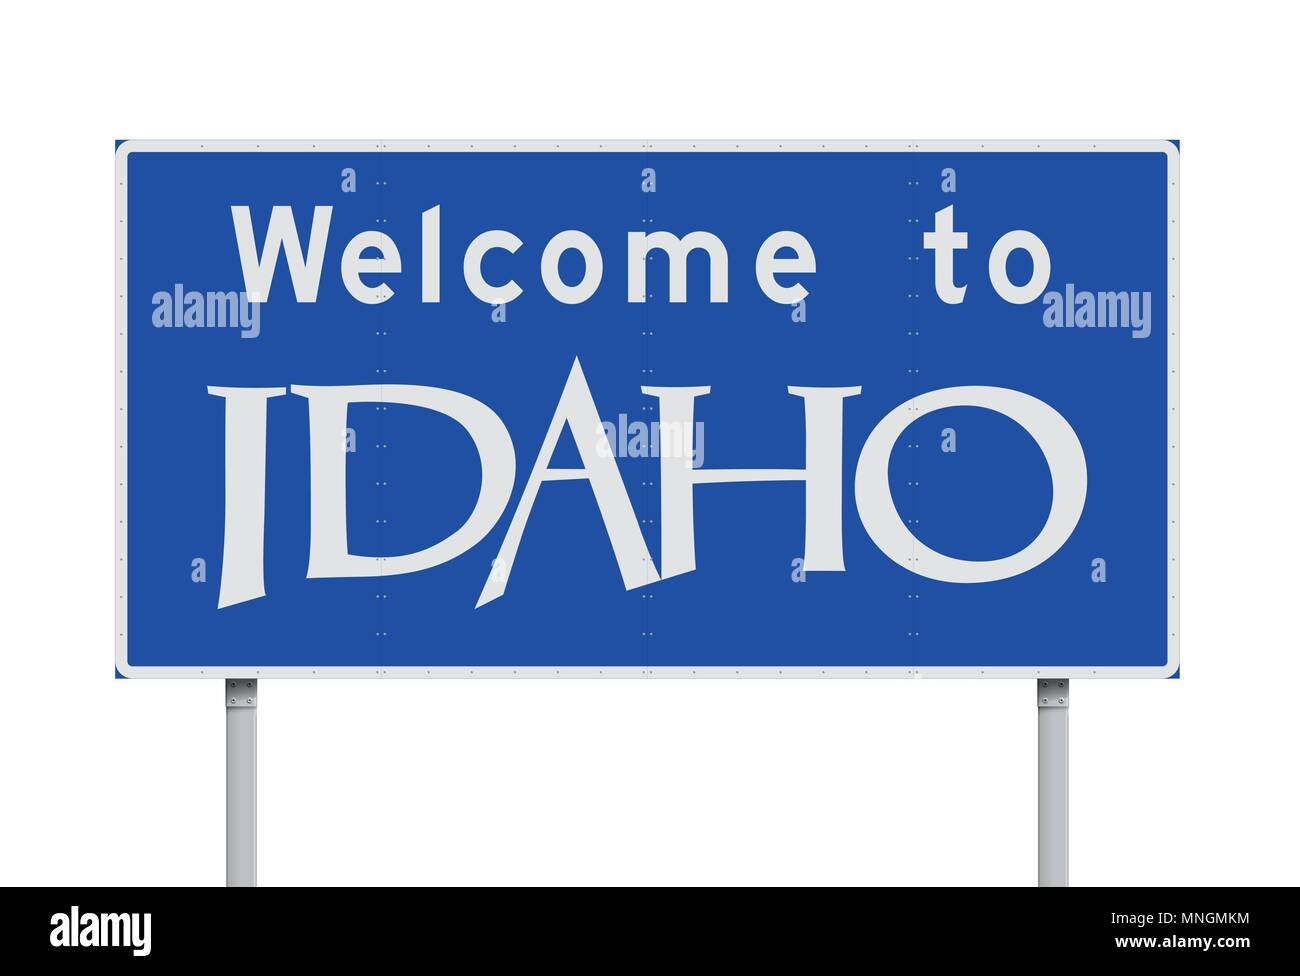 Vector illustration of the Welcome to Idaho blue road sign - Stock Image